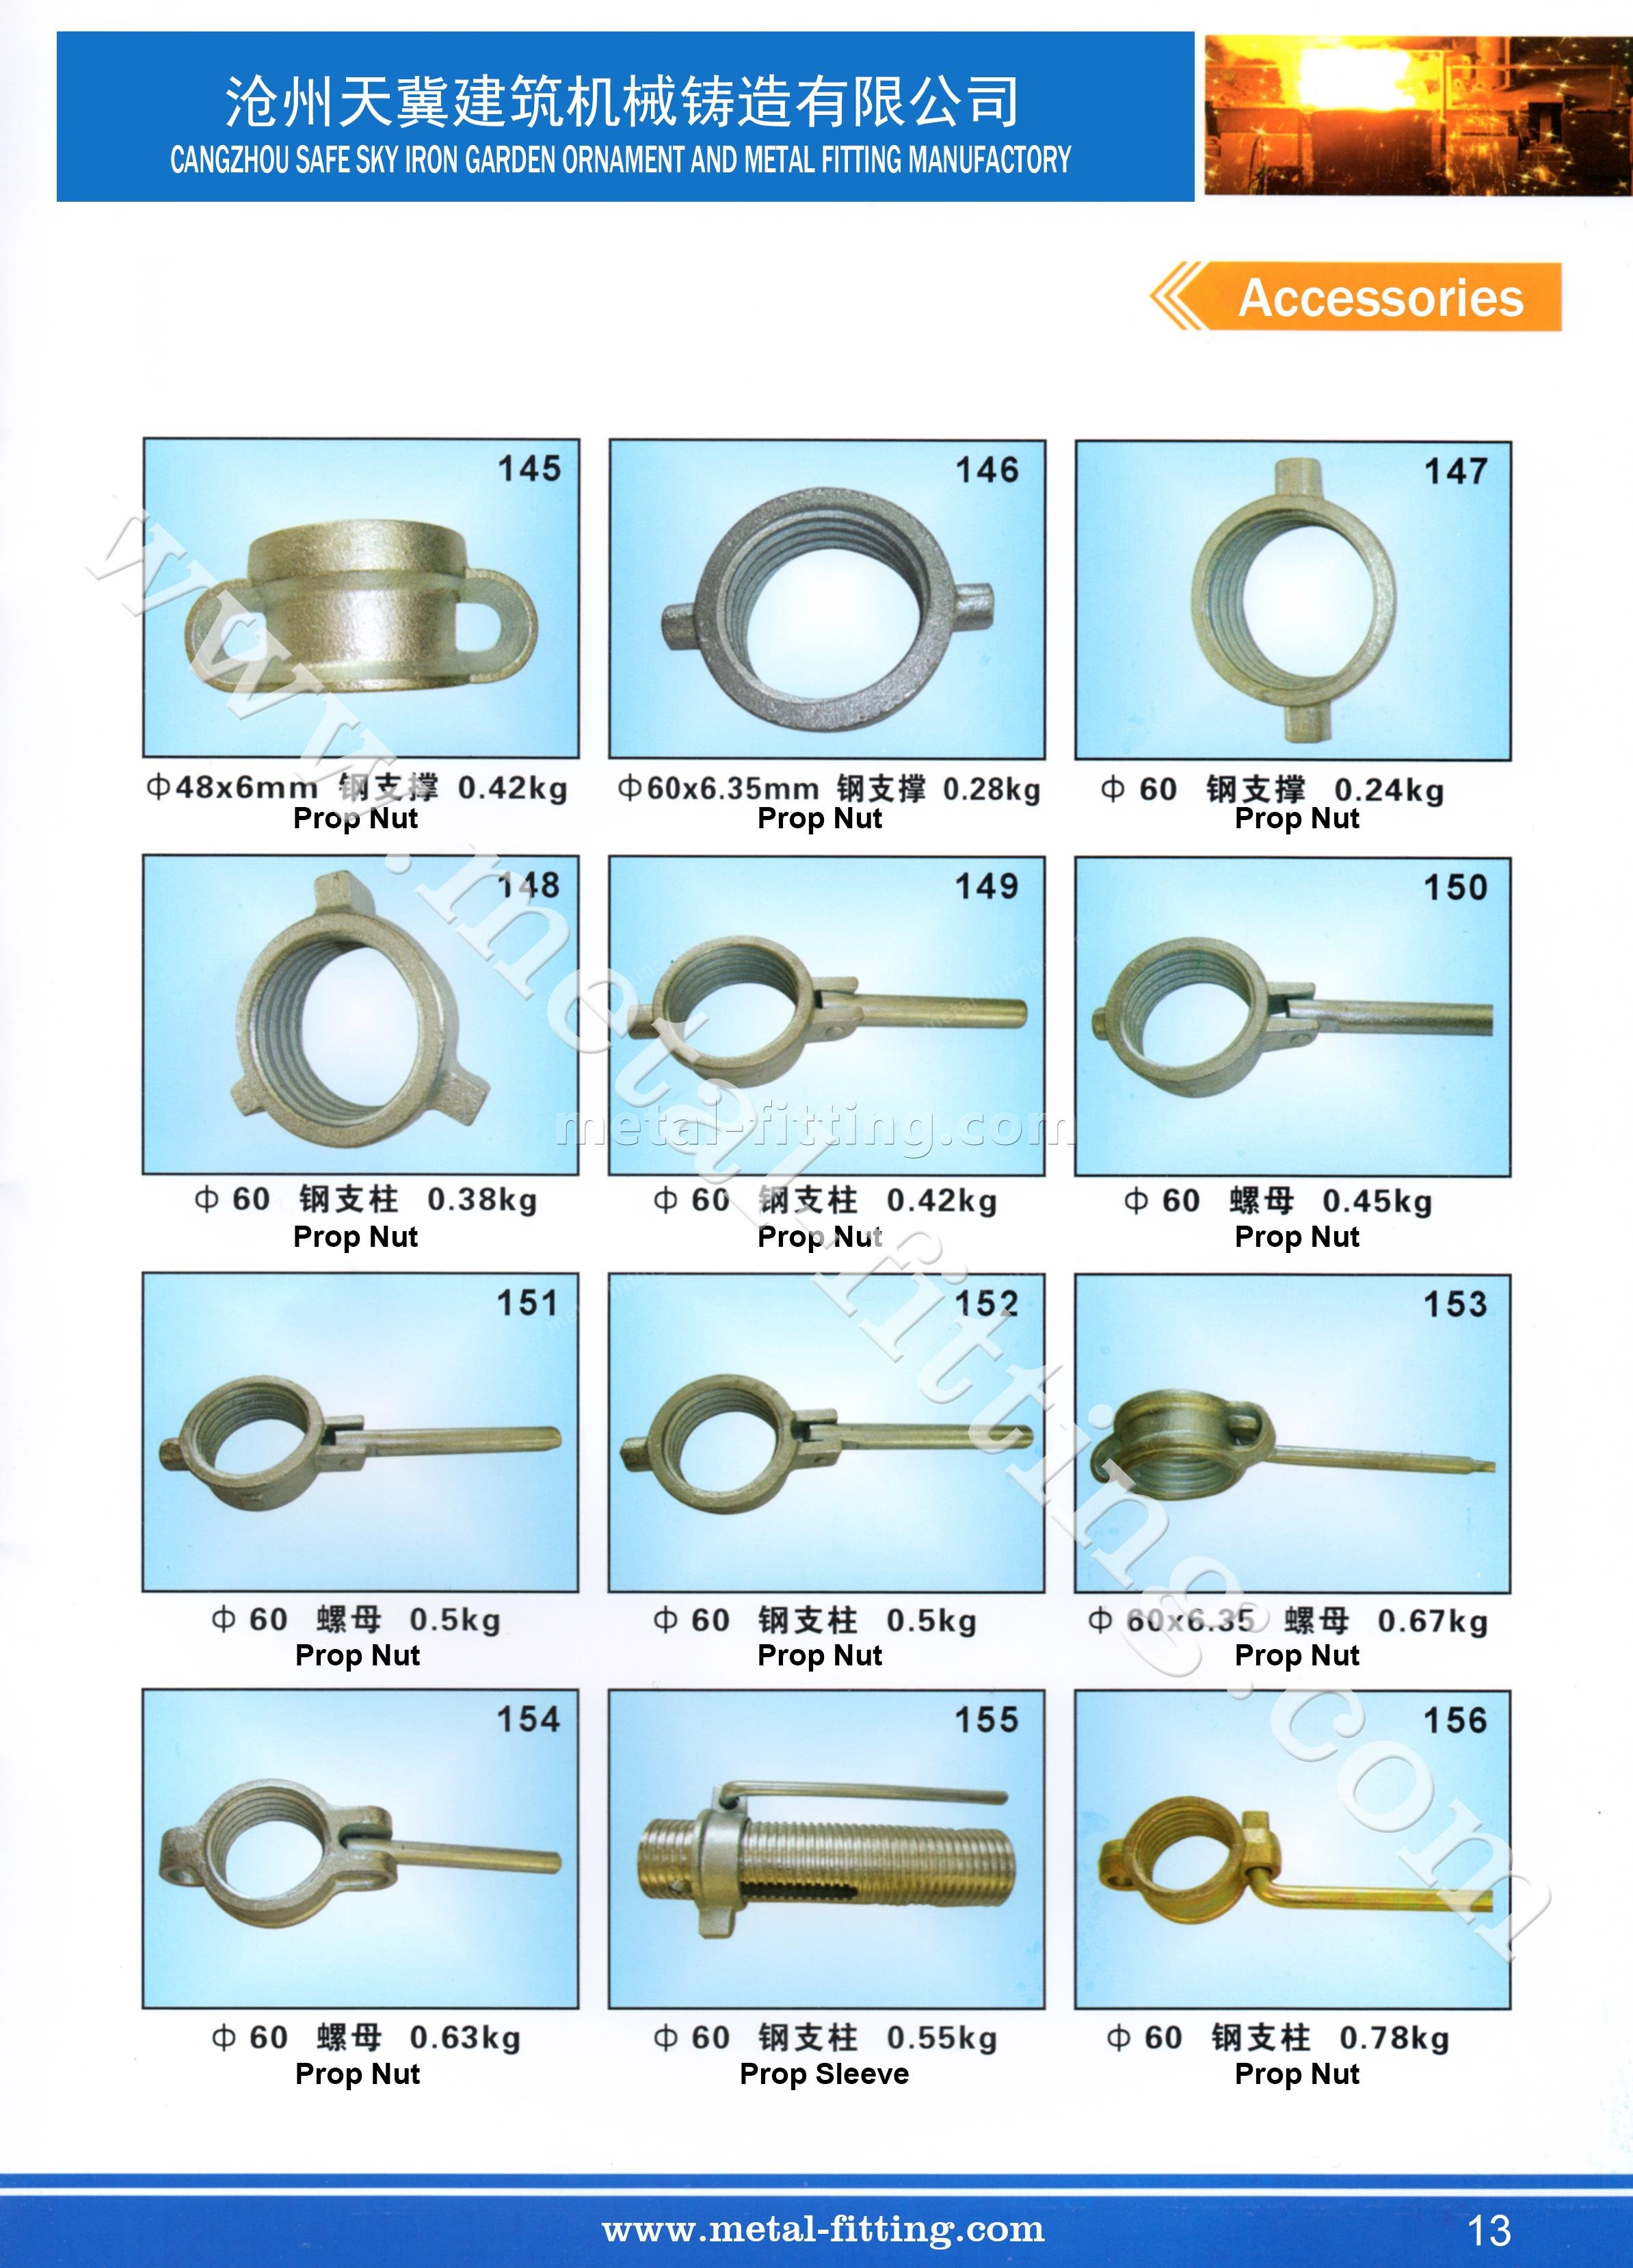 casting steel metal fitting, scaffolding system-13